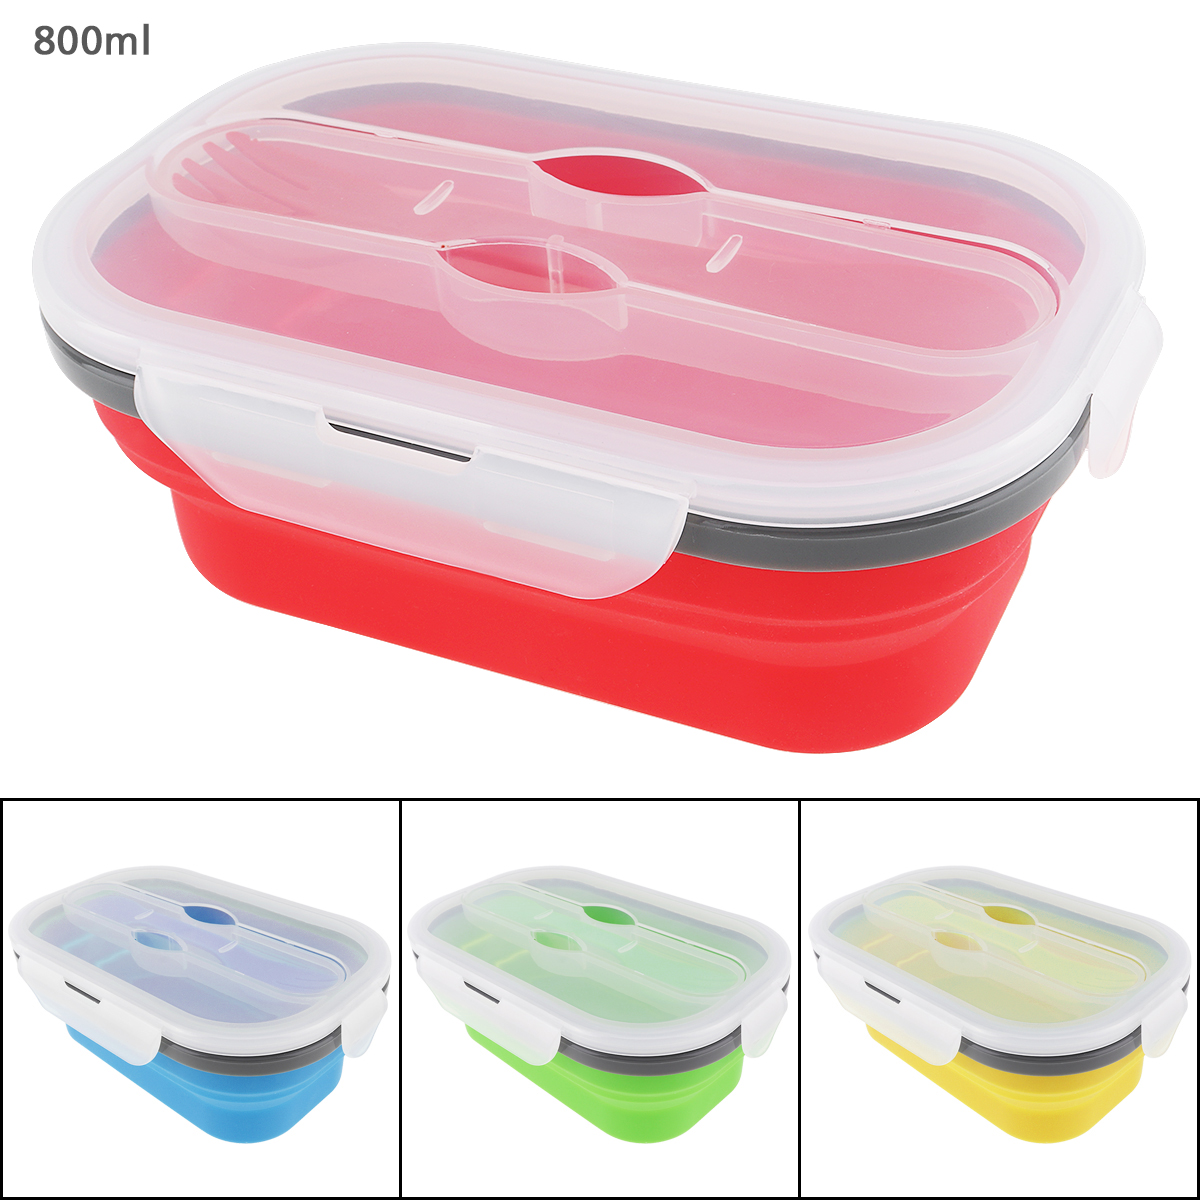 4 Colors 800ML Silicone Scalable Folding Lunchbox Bento Box with Thickening Card Buckle and Three Purpose Tableware4 Colors 800ML Silicone Scalable Folding Lunchbox Bento Box with Thickening Card Buckle and Three Purpose Tableware